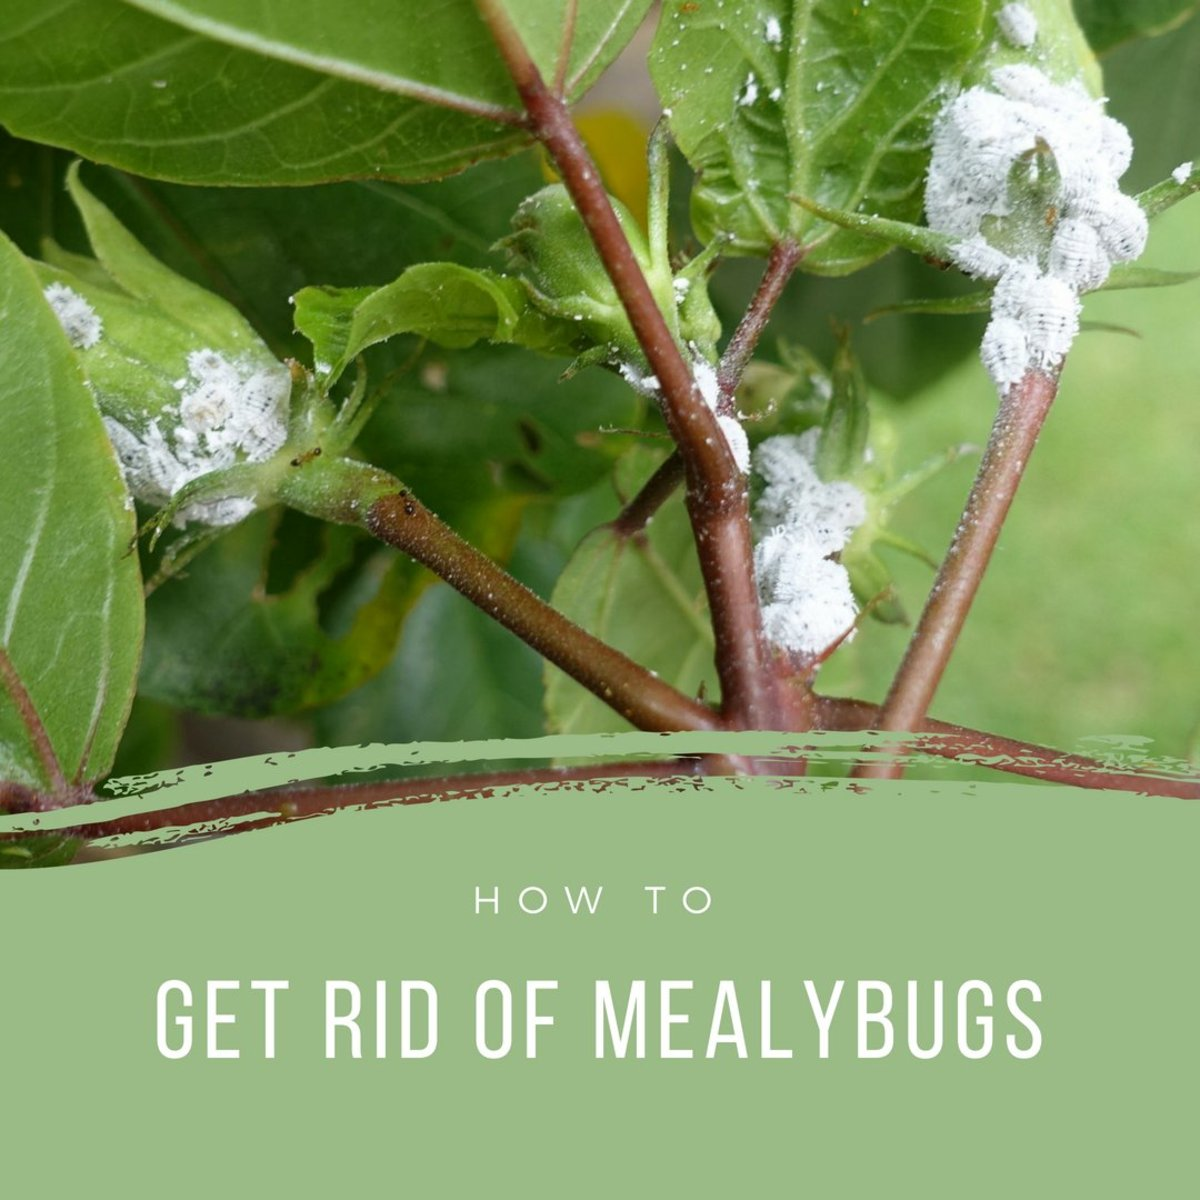 Is White Lint on a Houseplant a Sign of Mealybugs?